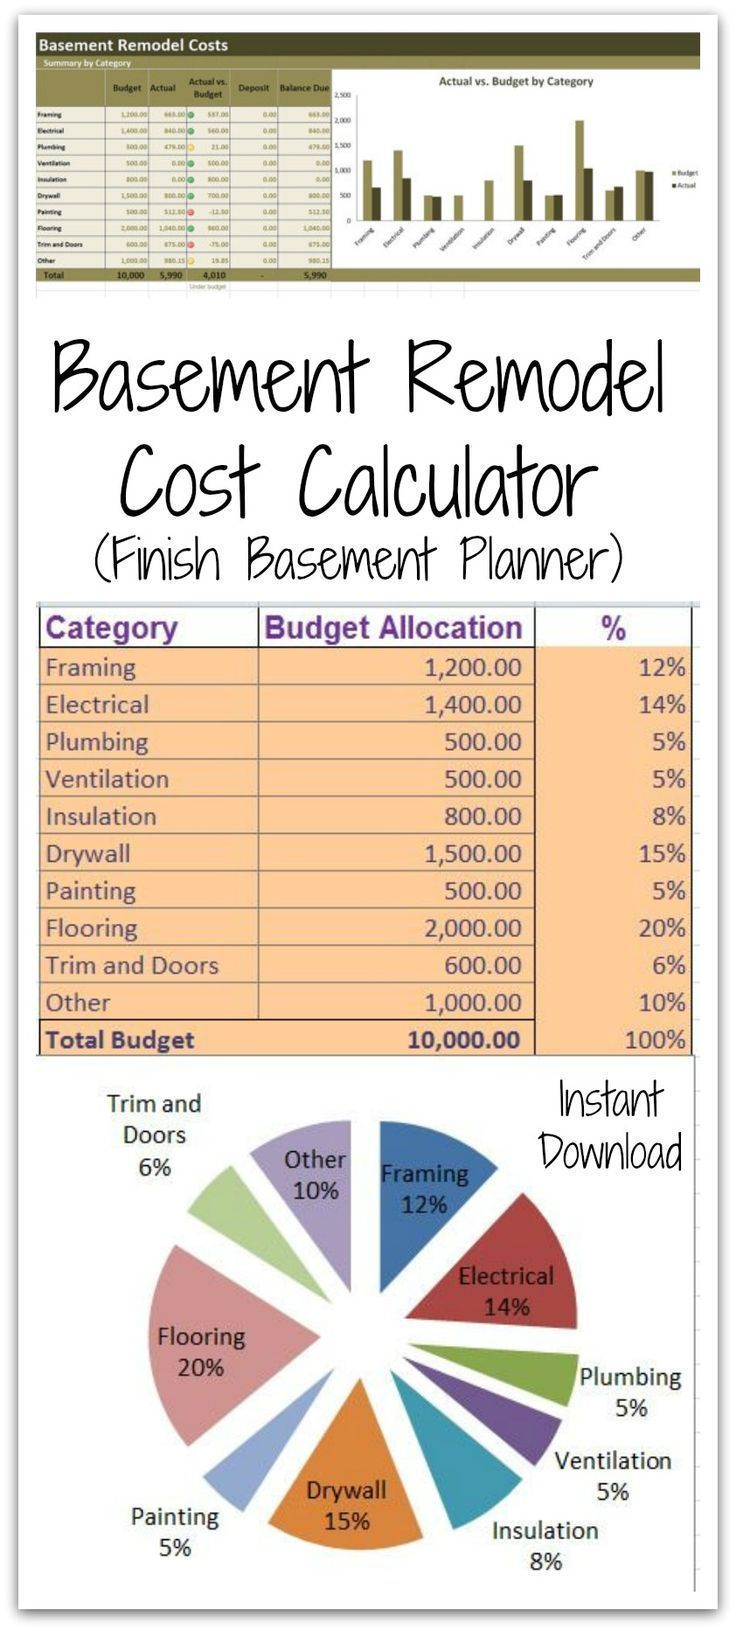 stay on top of your renovation costs with this basement remodel